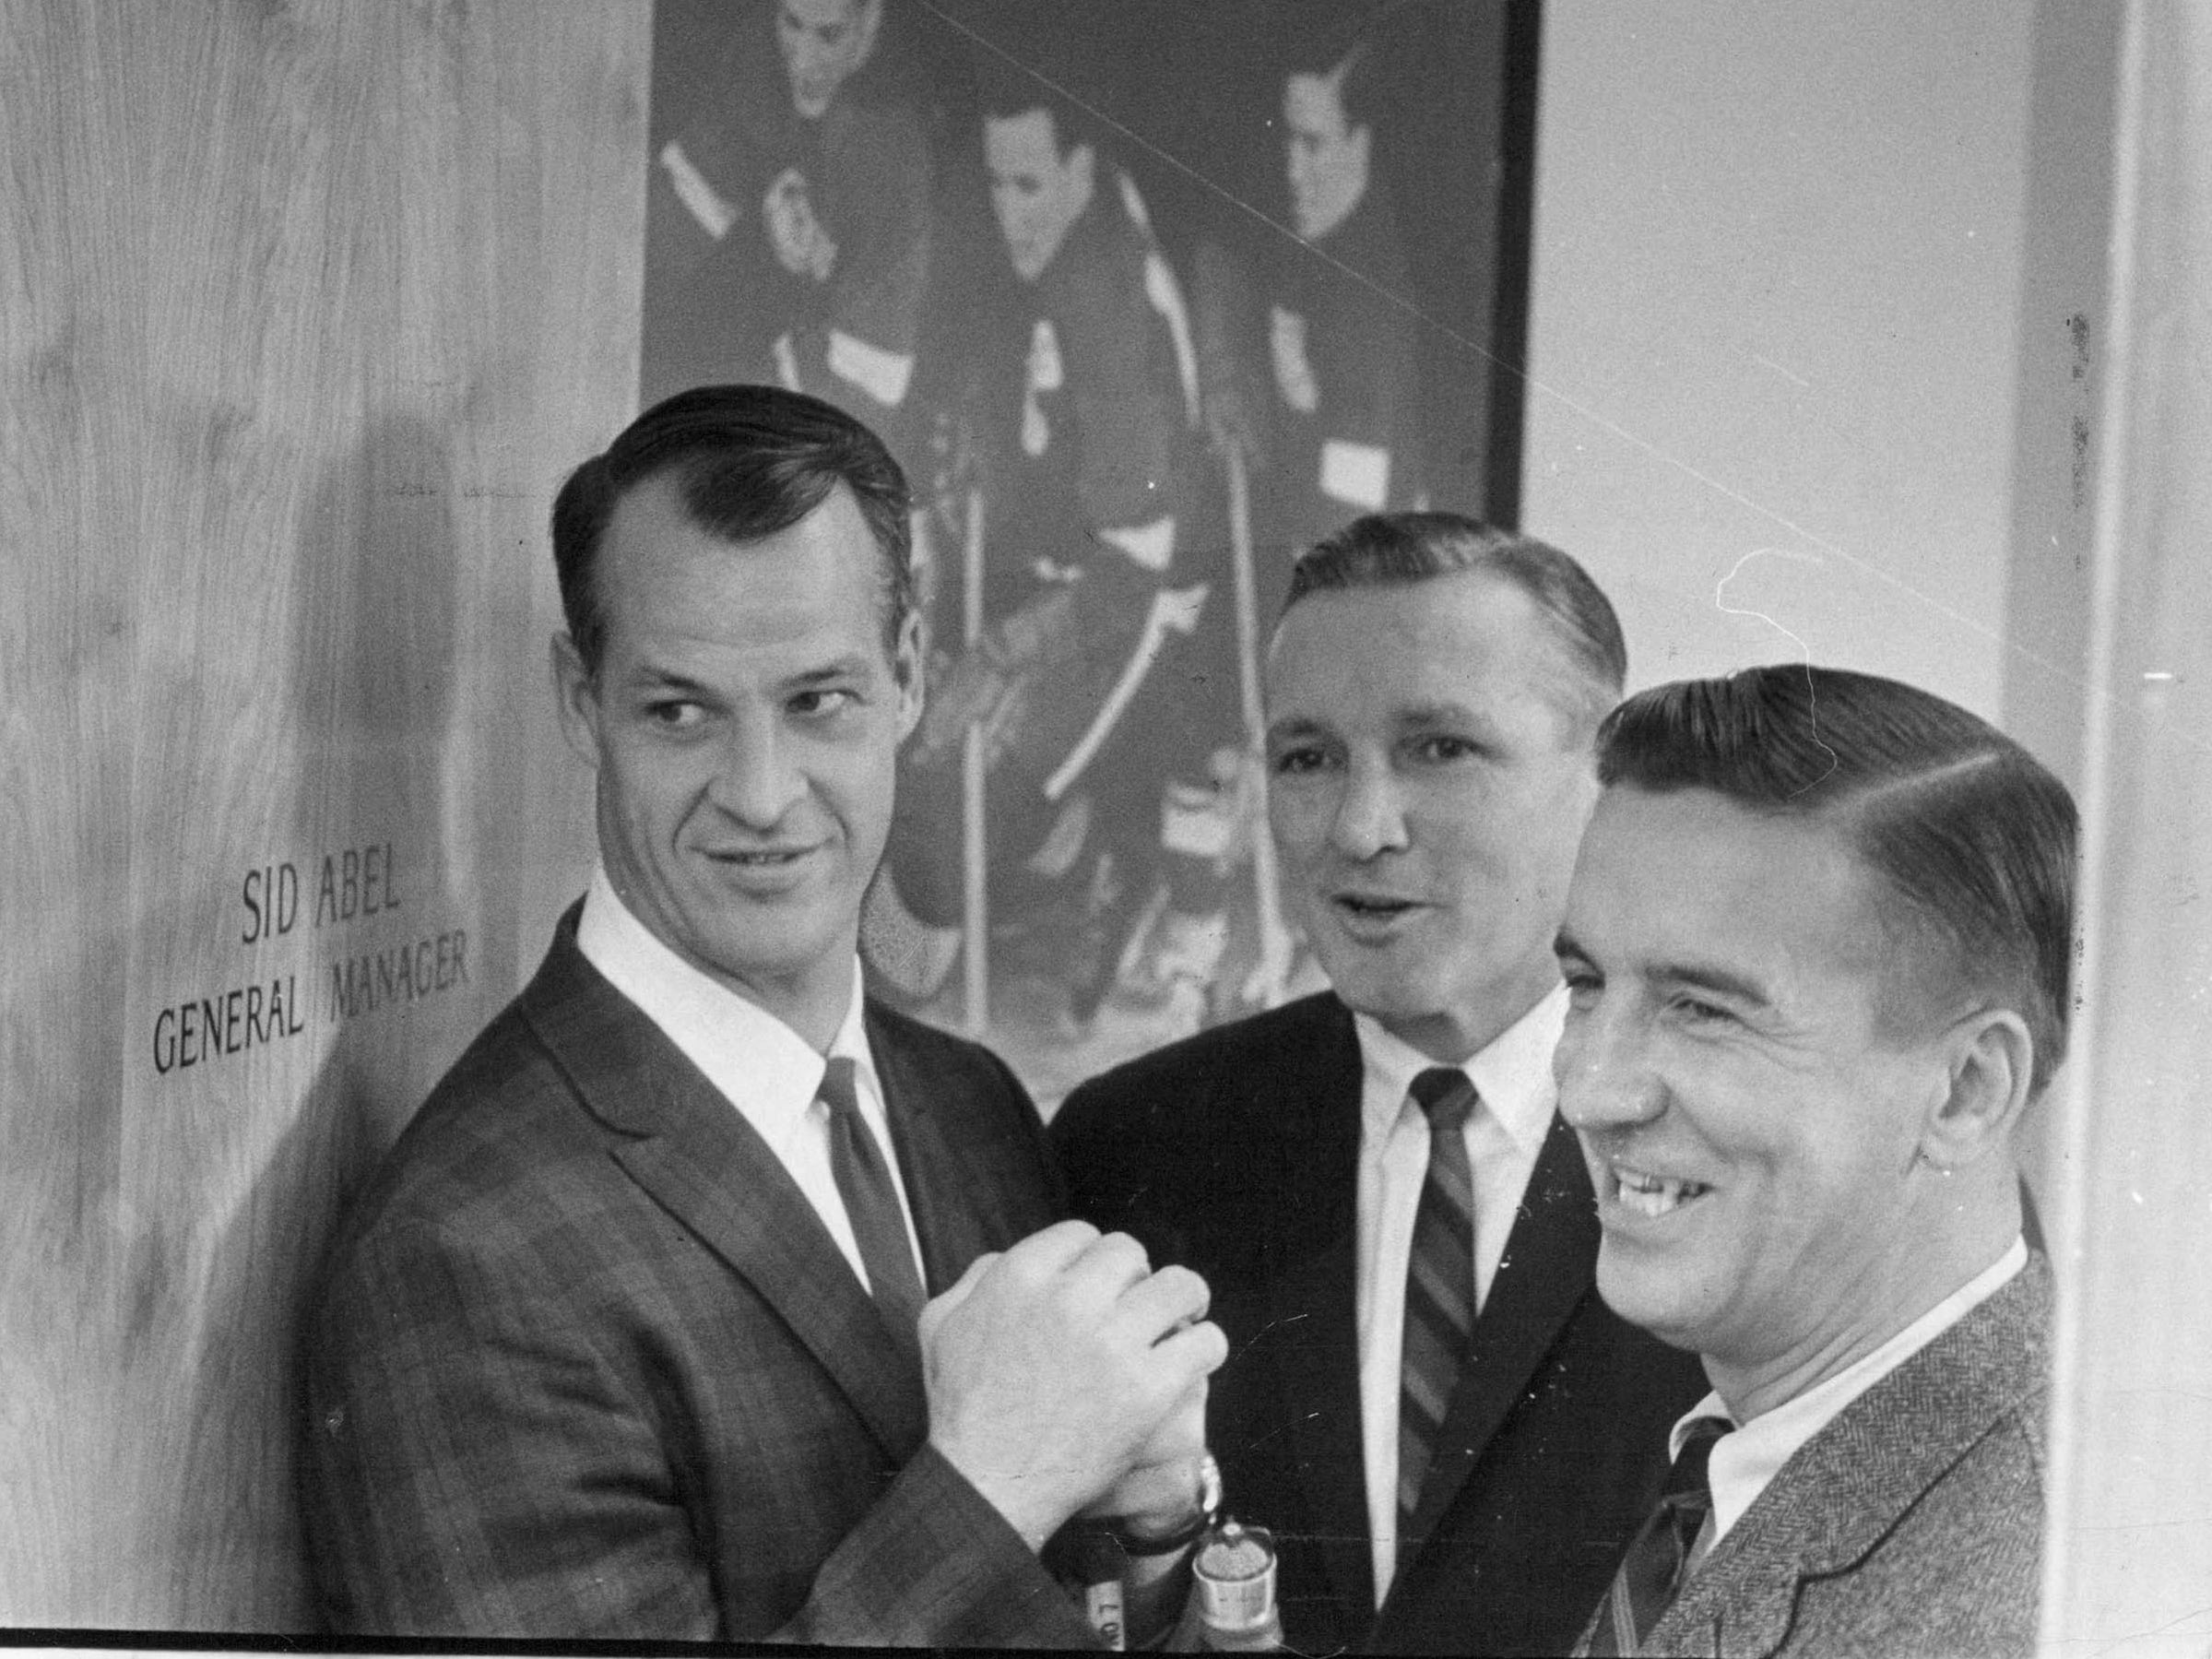 The production Line was reassembled on the eve of the Red Wing's NHL opener. Only one of the trio still is playing - Gordie Howe. Ted Lindsay, right, now a telecaster,  went up to Olympia to get a line on the Wings from Howe and general manager Sid Abel.